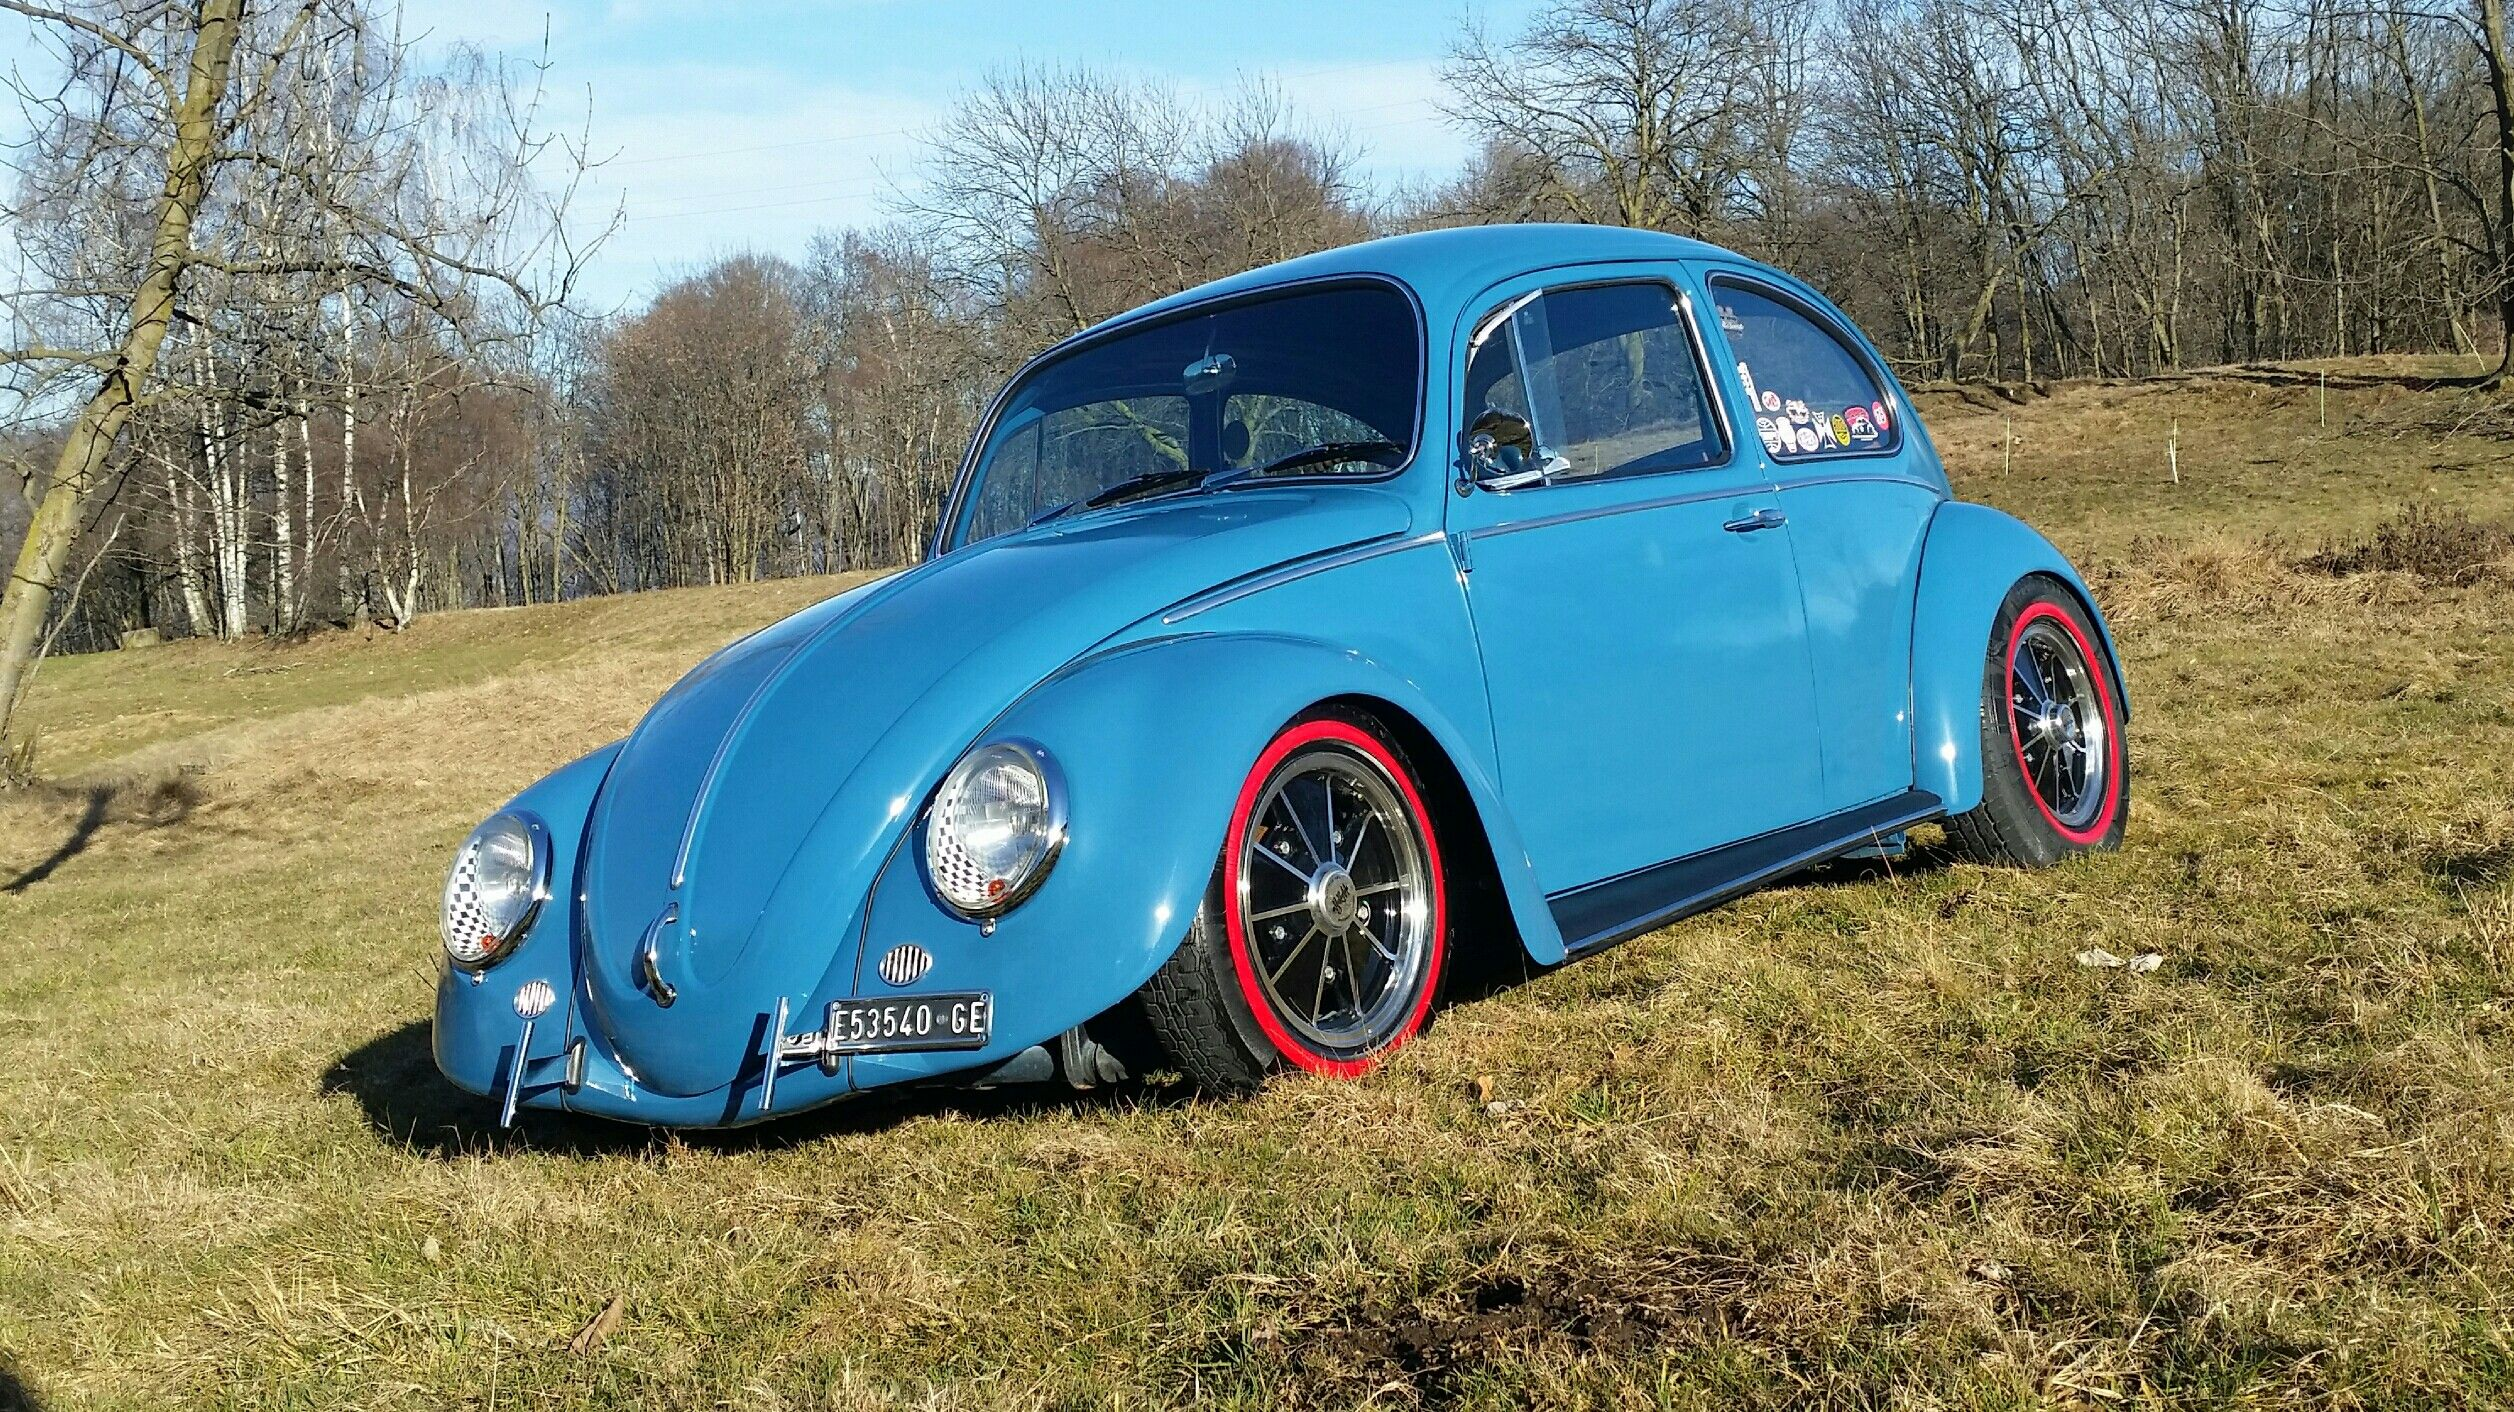 hight resolution of vw beetle bug coccinelle maggiolino cal look vintage cool blue vintage racing